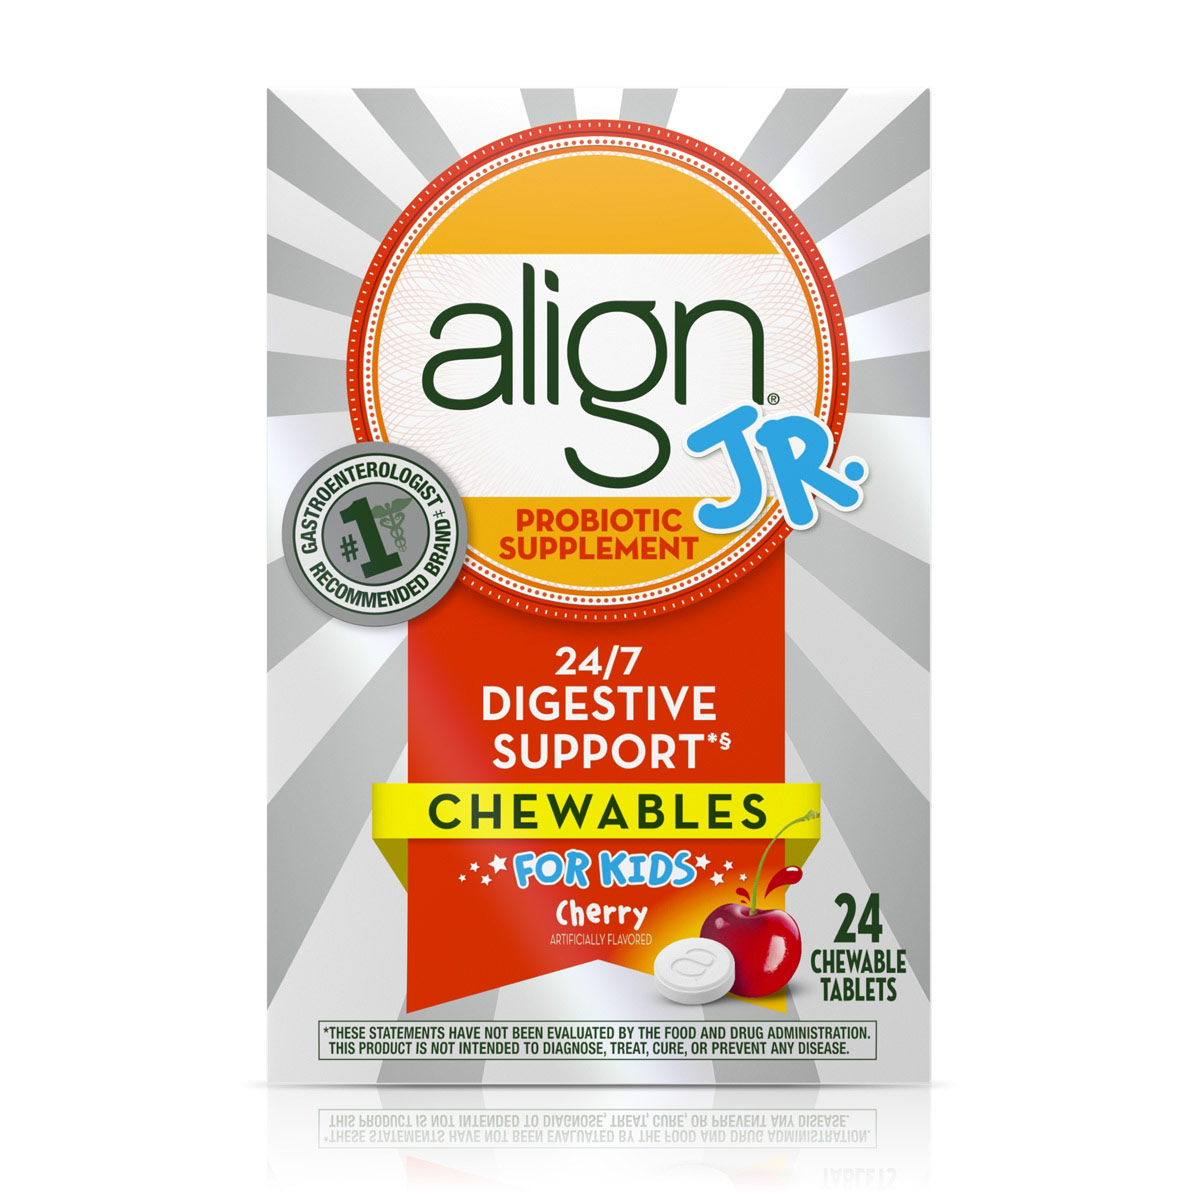 ALIGN JR. PROBIOTIC SUPPLEMENT CHEWABLES FOR KIDS